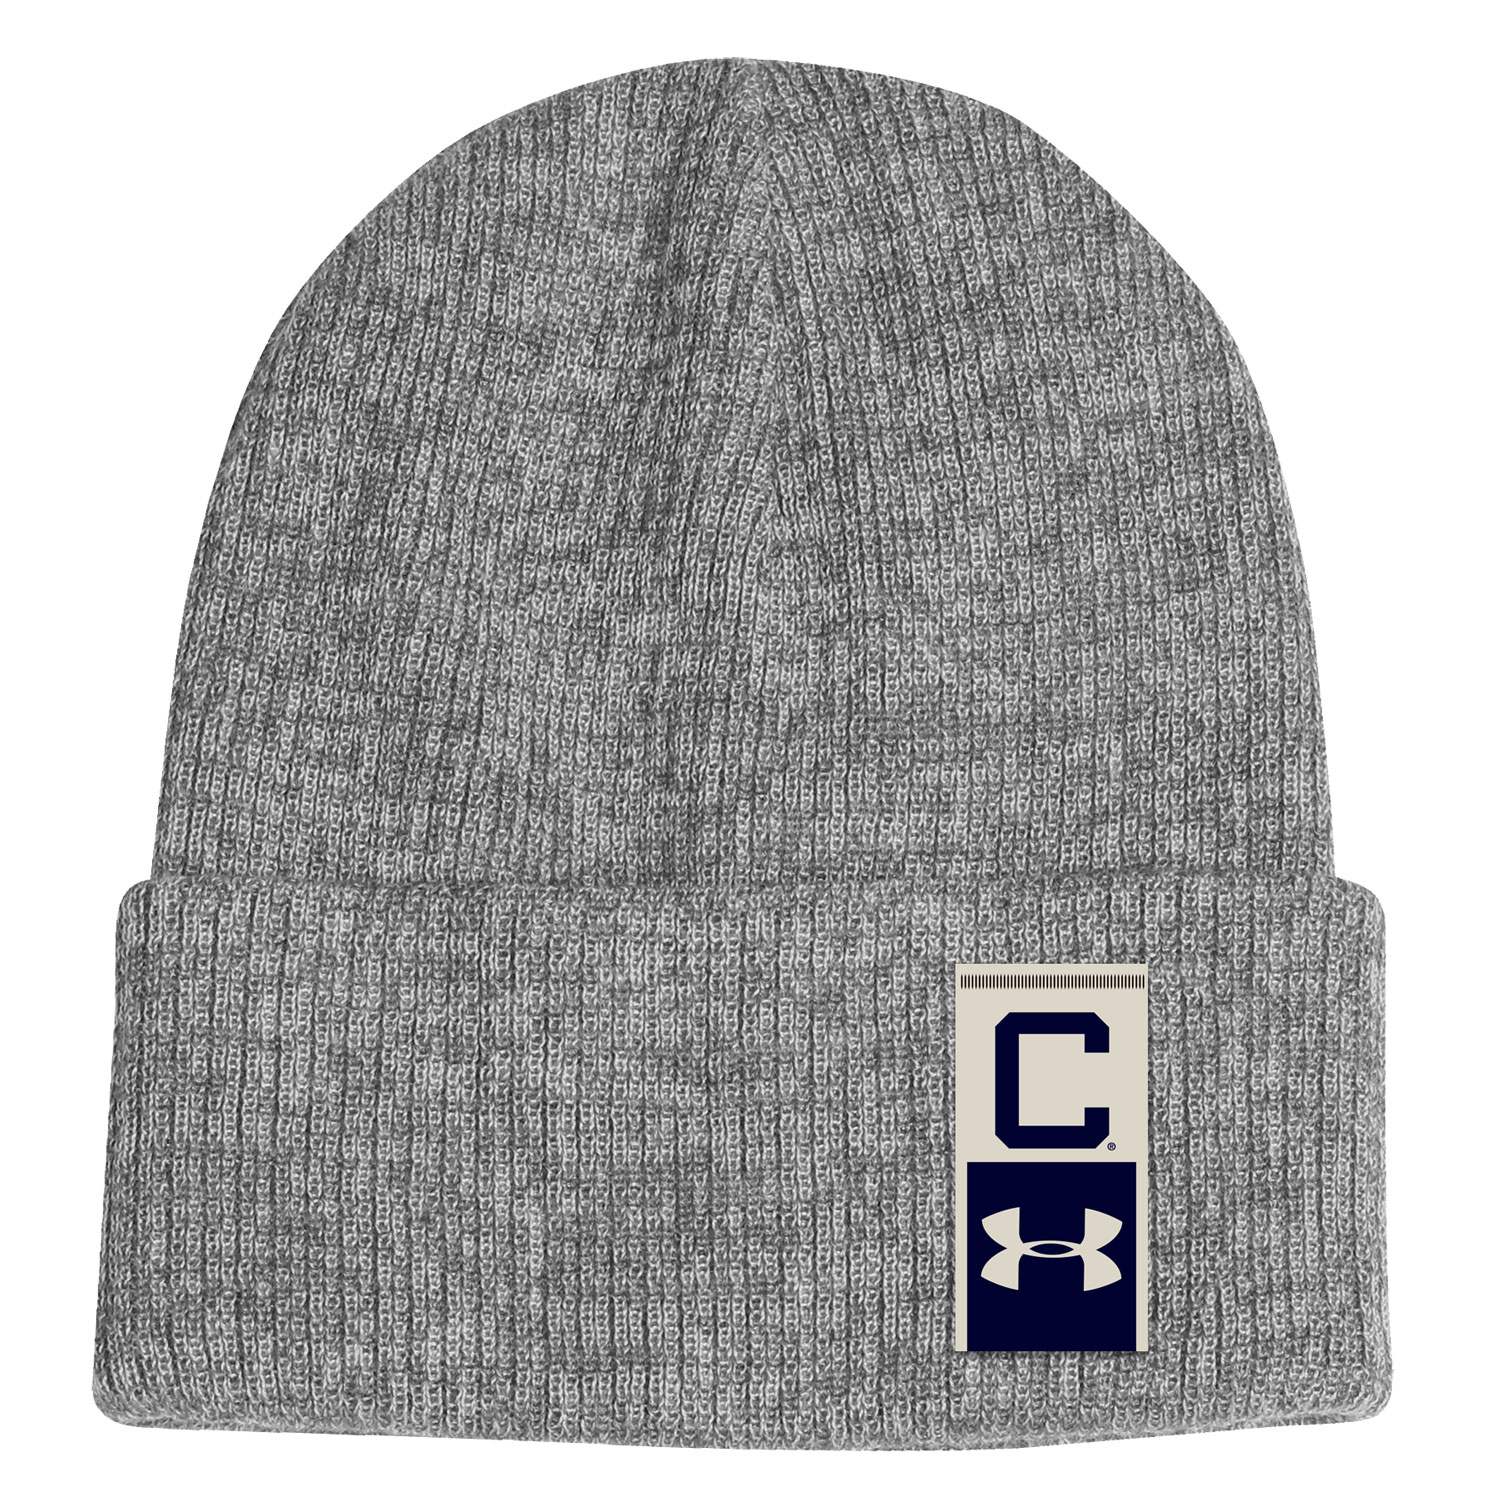 25323409a1f Cal Bears Under Armour Iconic Truckstop Beanie